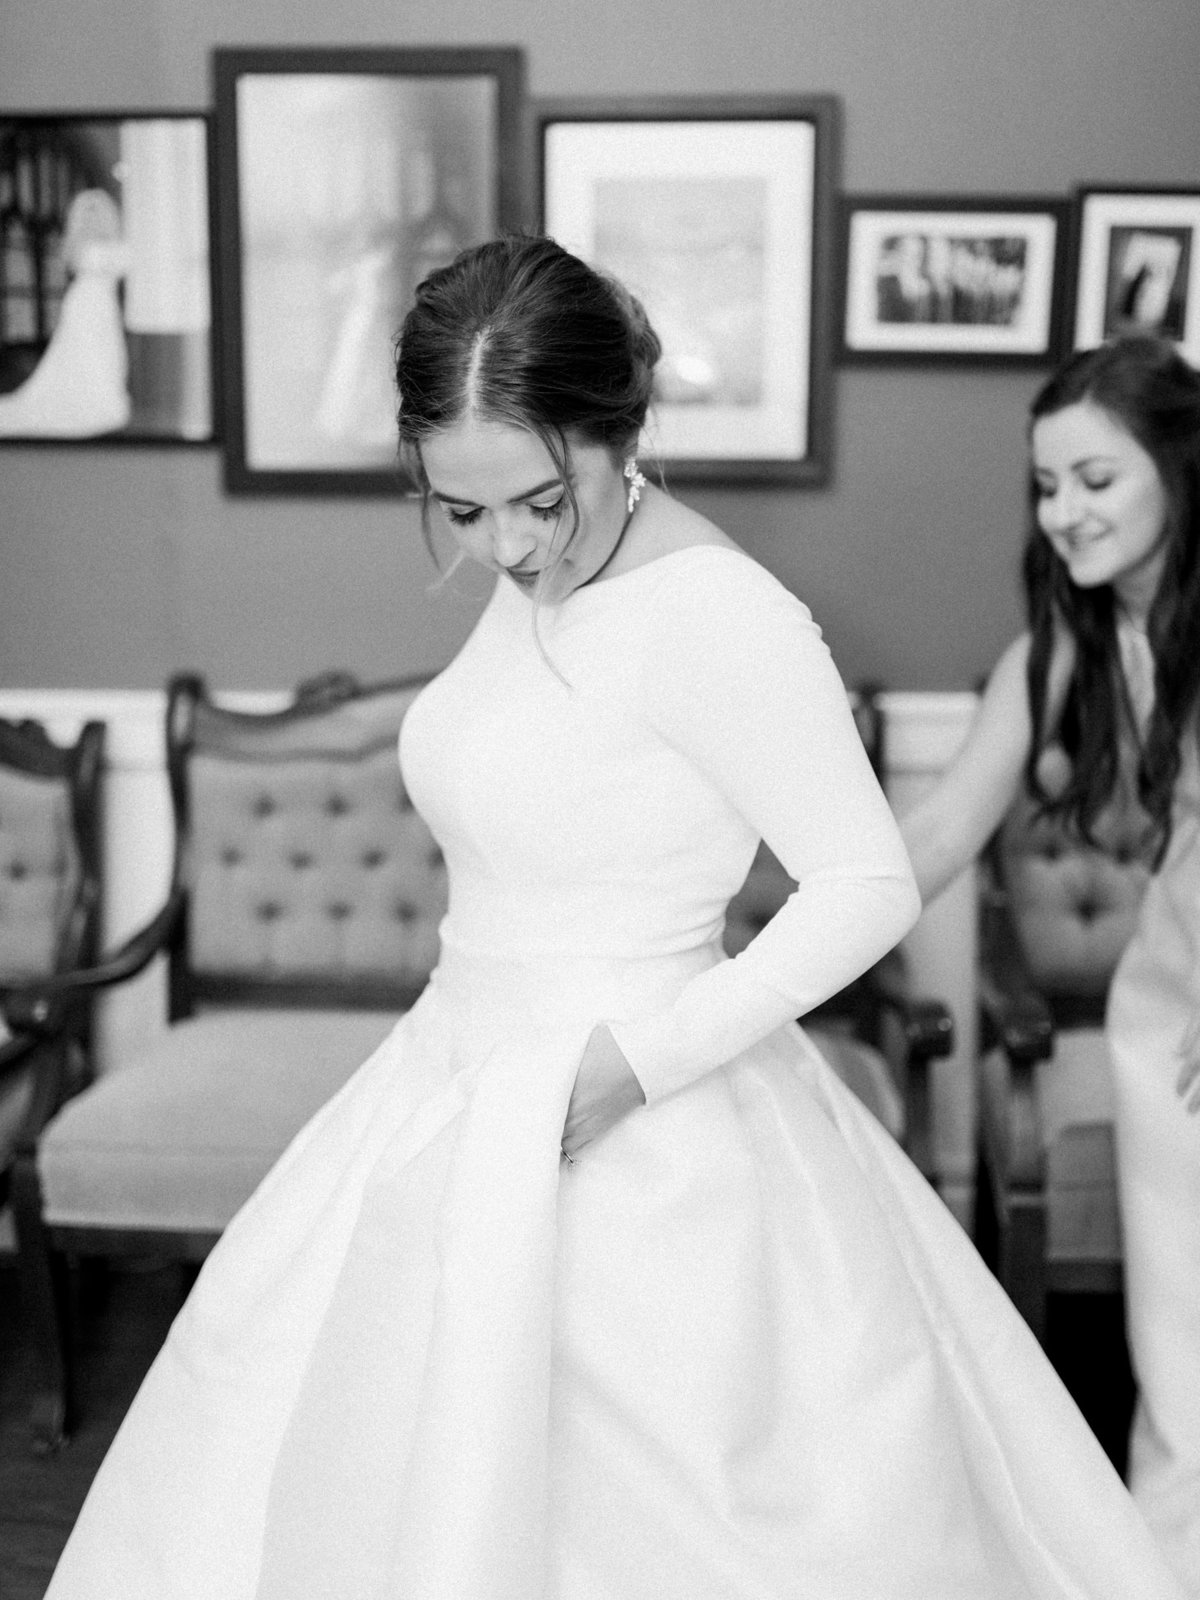 Courtney Hanson Photography - Festive Holiday Wedding in Dallas at Hickory Street Annex-0792